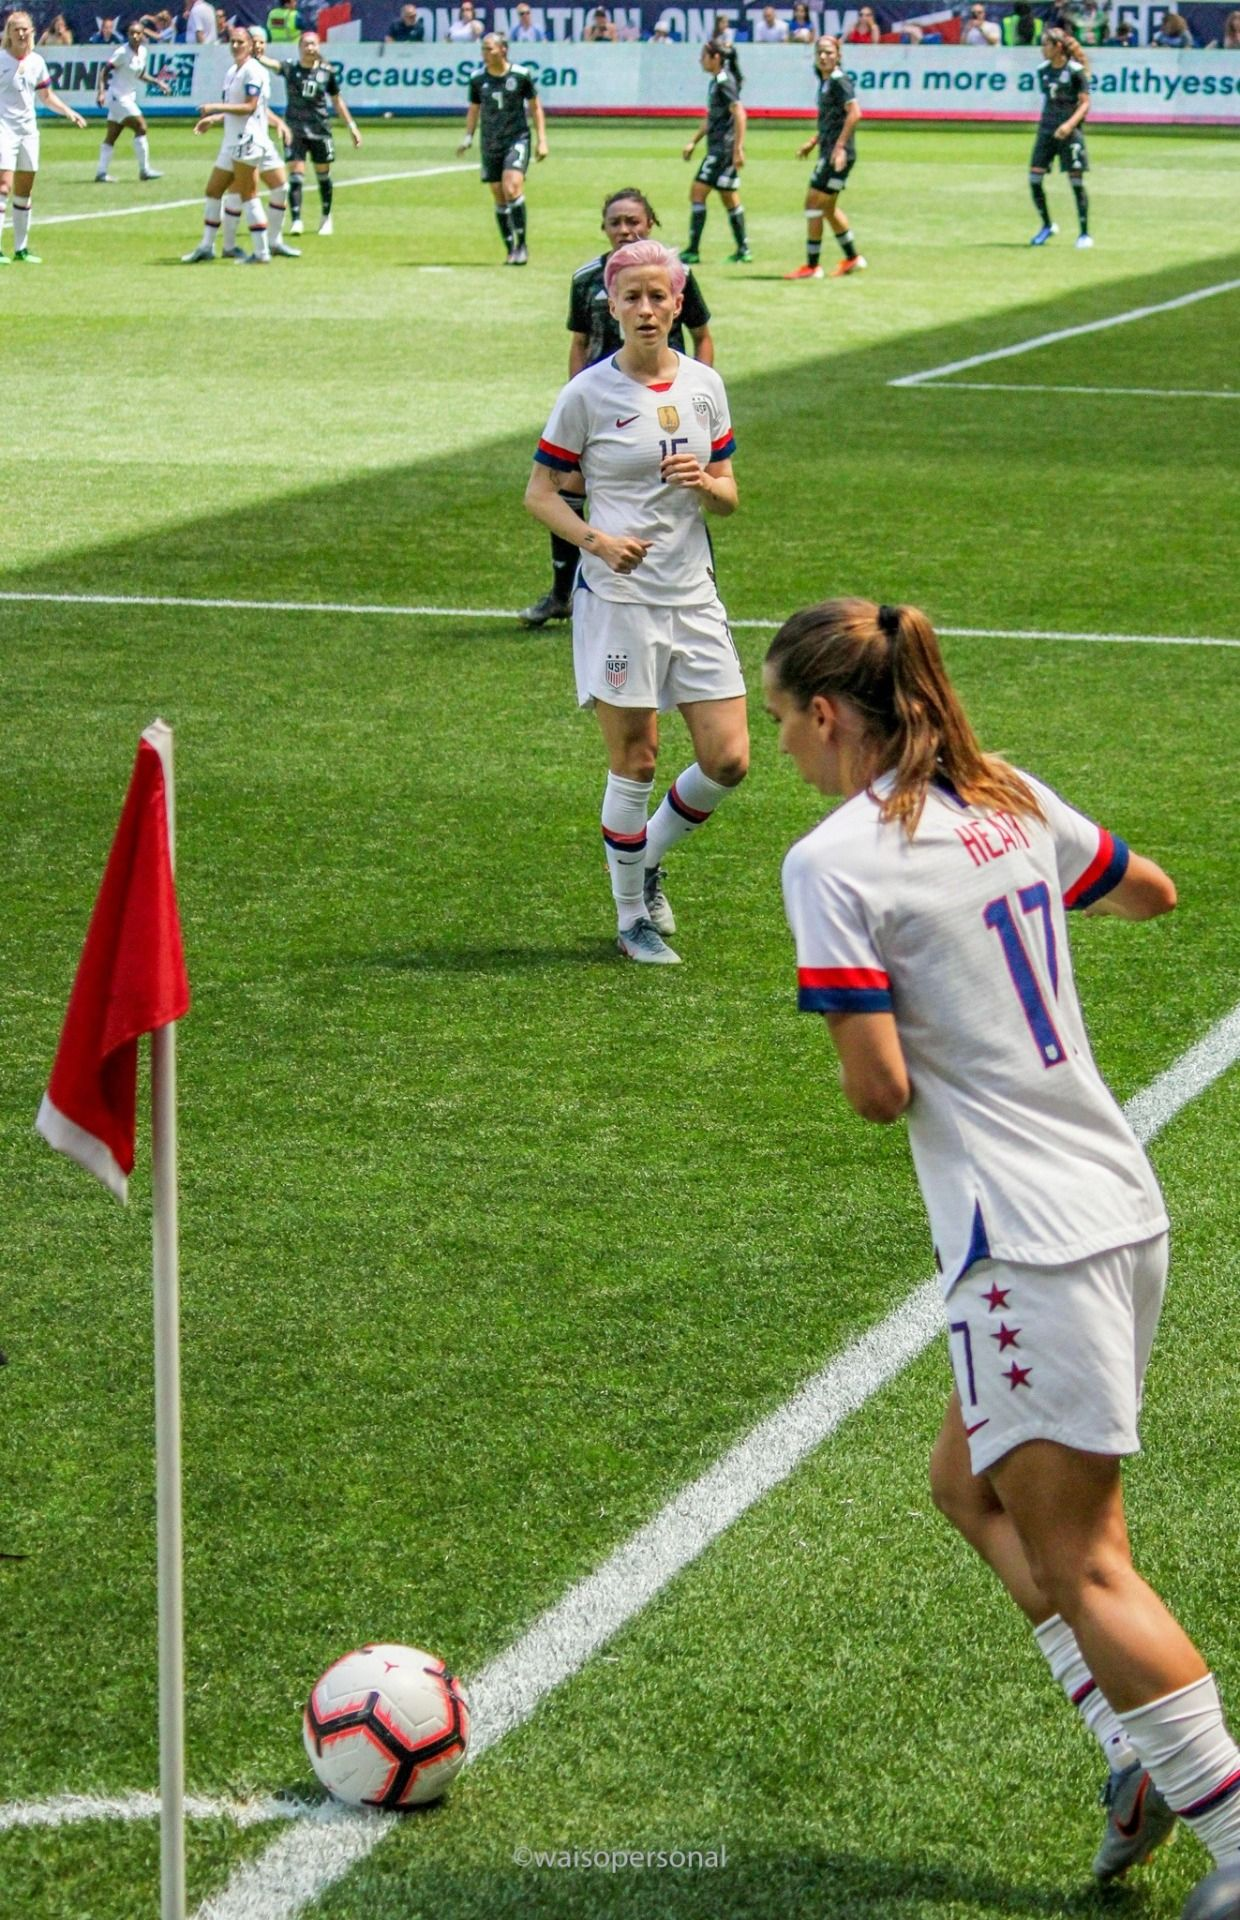 Pin By Calatefrancisco On Uswnt In 2020 Usa Soccer Women Womens Soccer Us Women S National Soccer Team